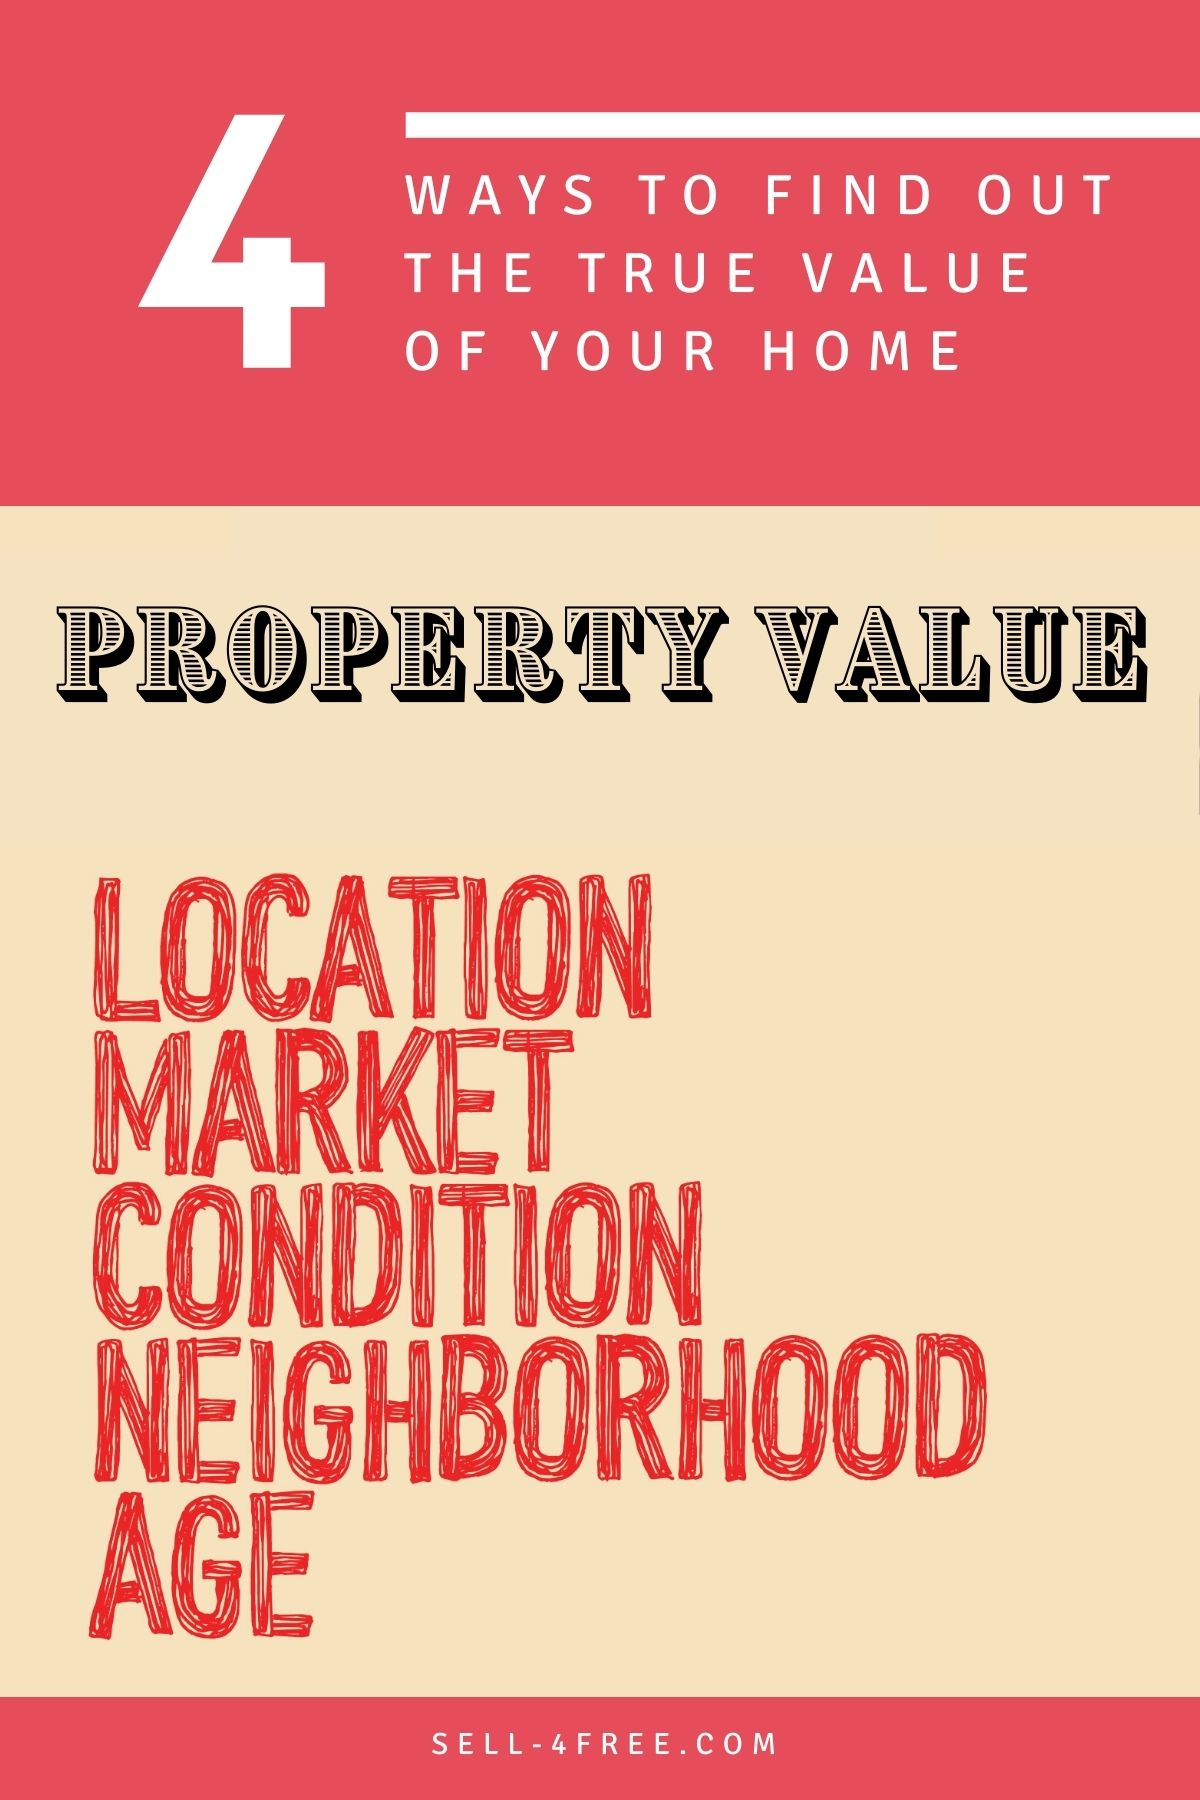 4 Ways to Find out the TRUE Value of your Home